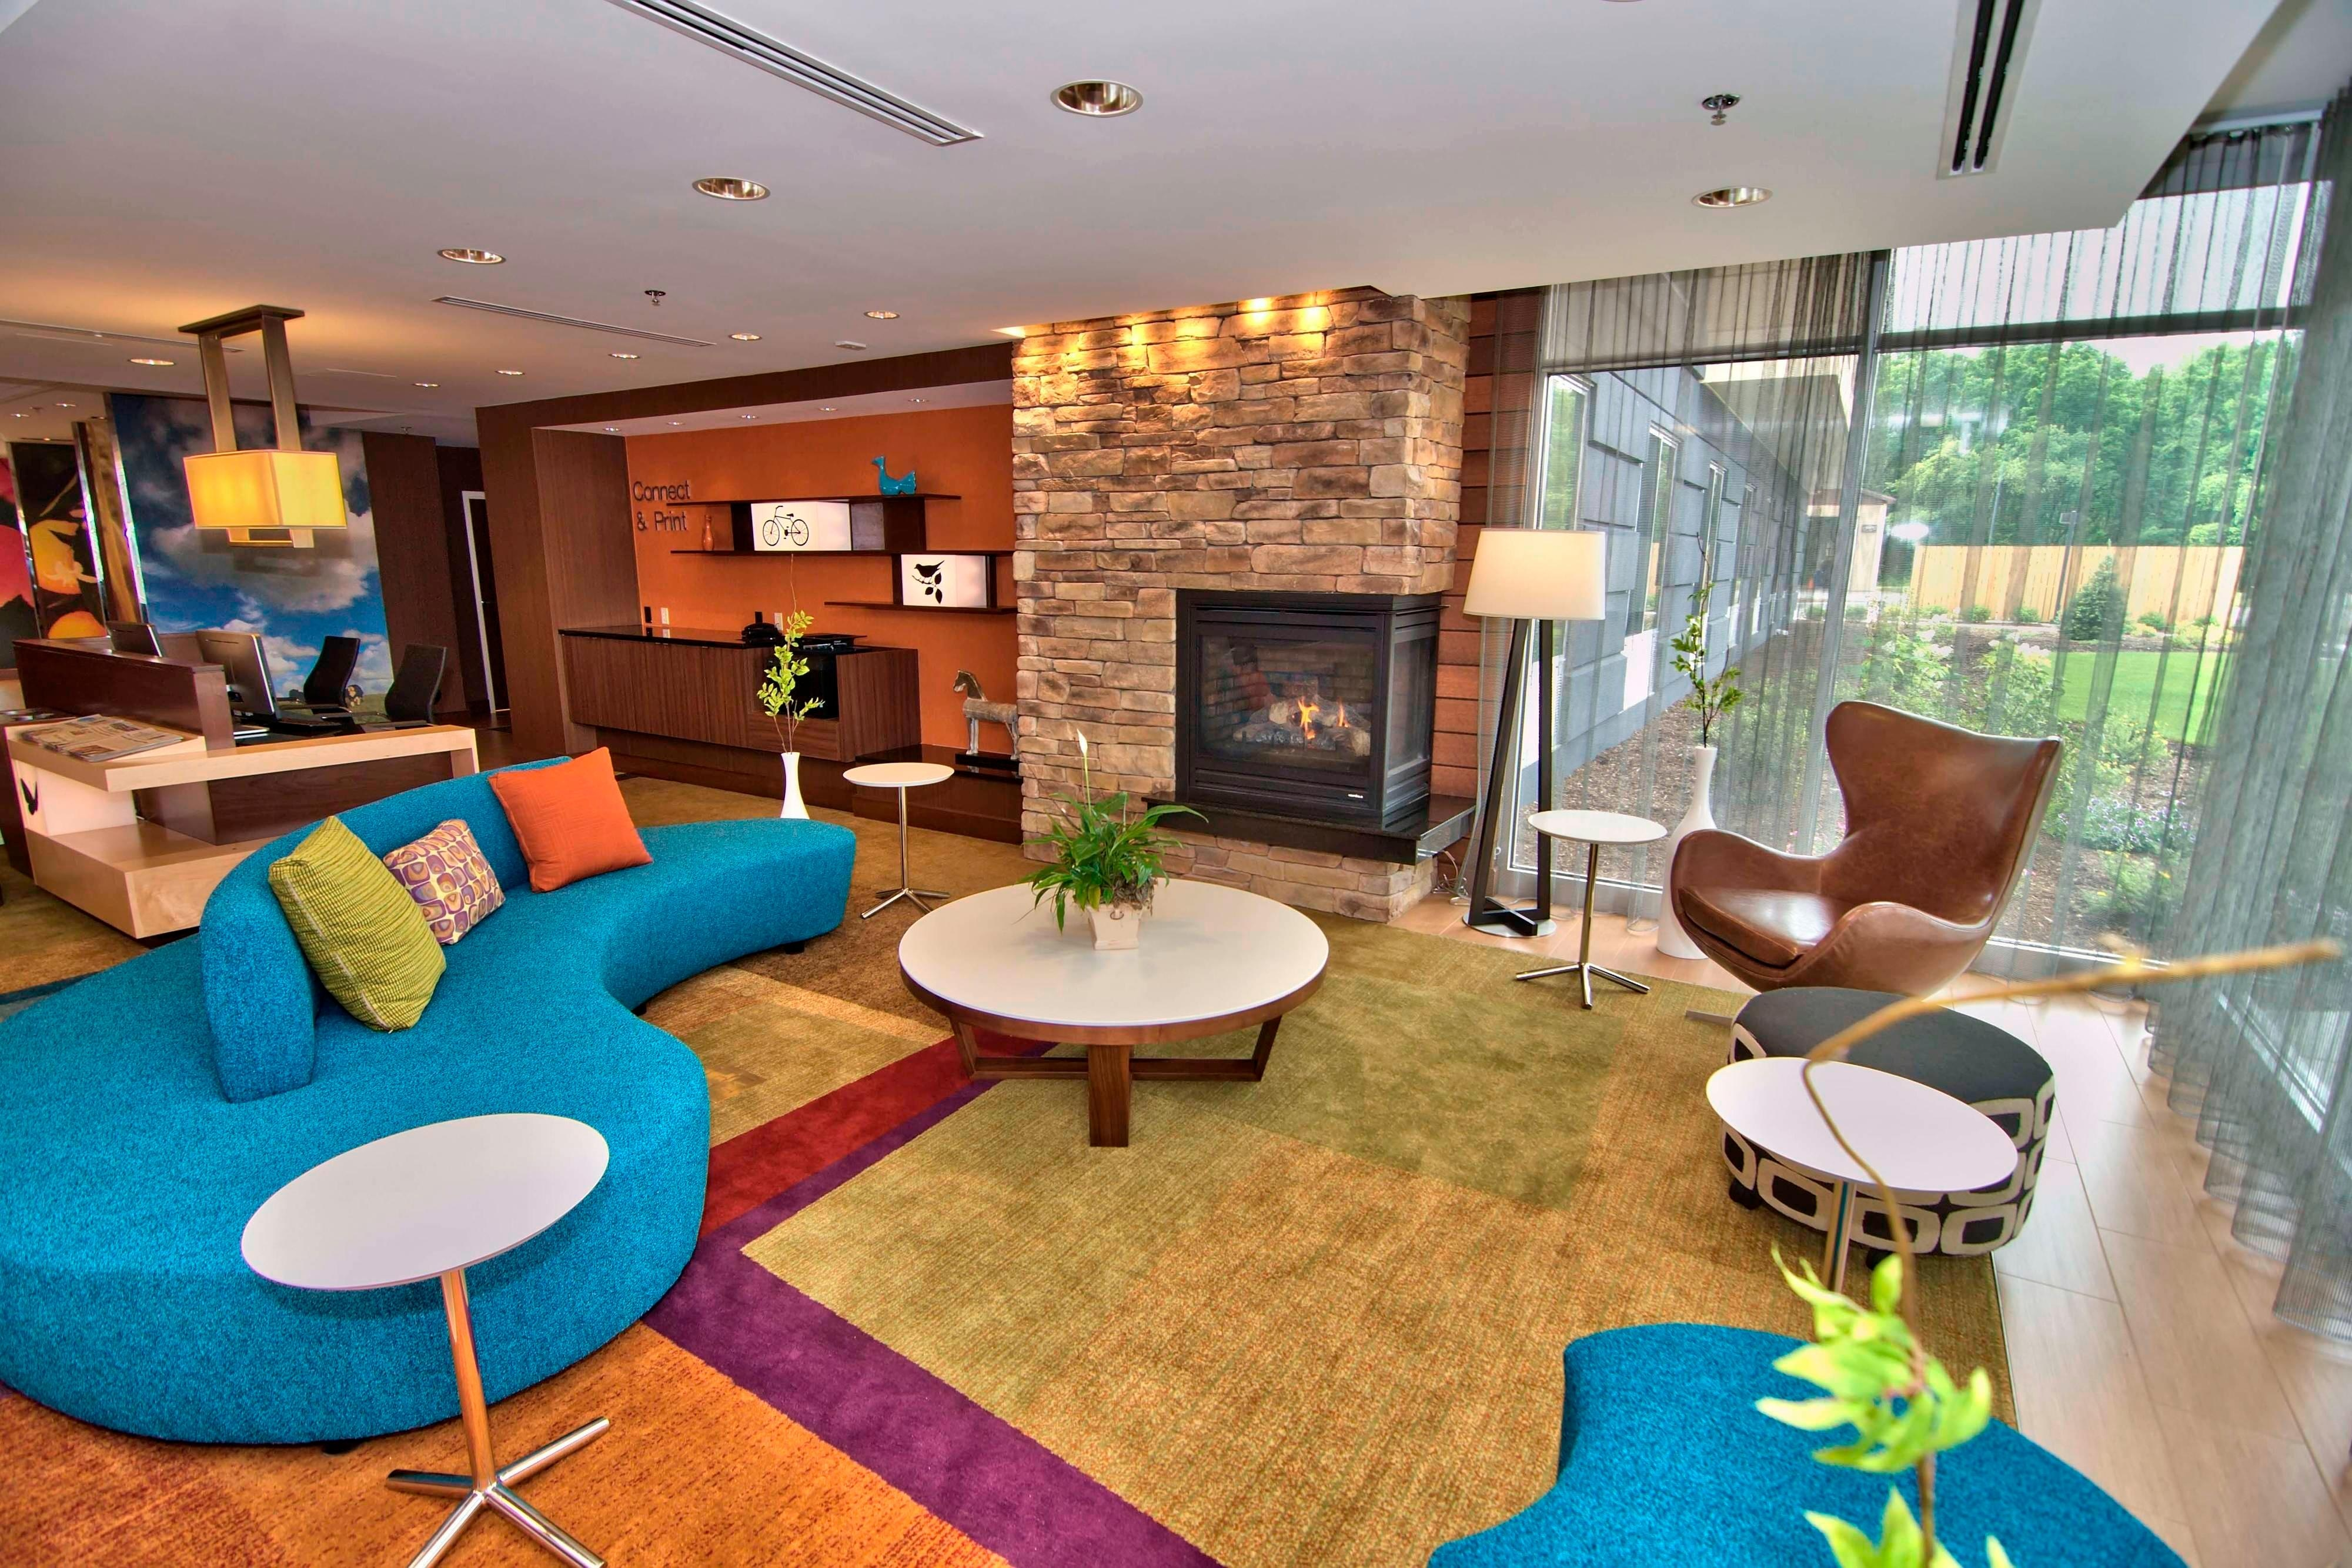 Towanda hotel lobby seating area